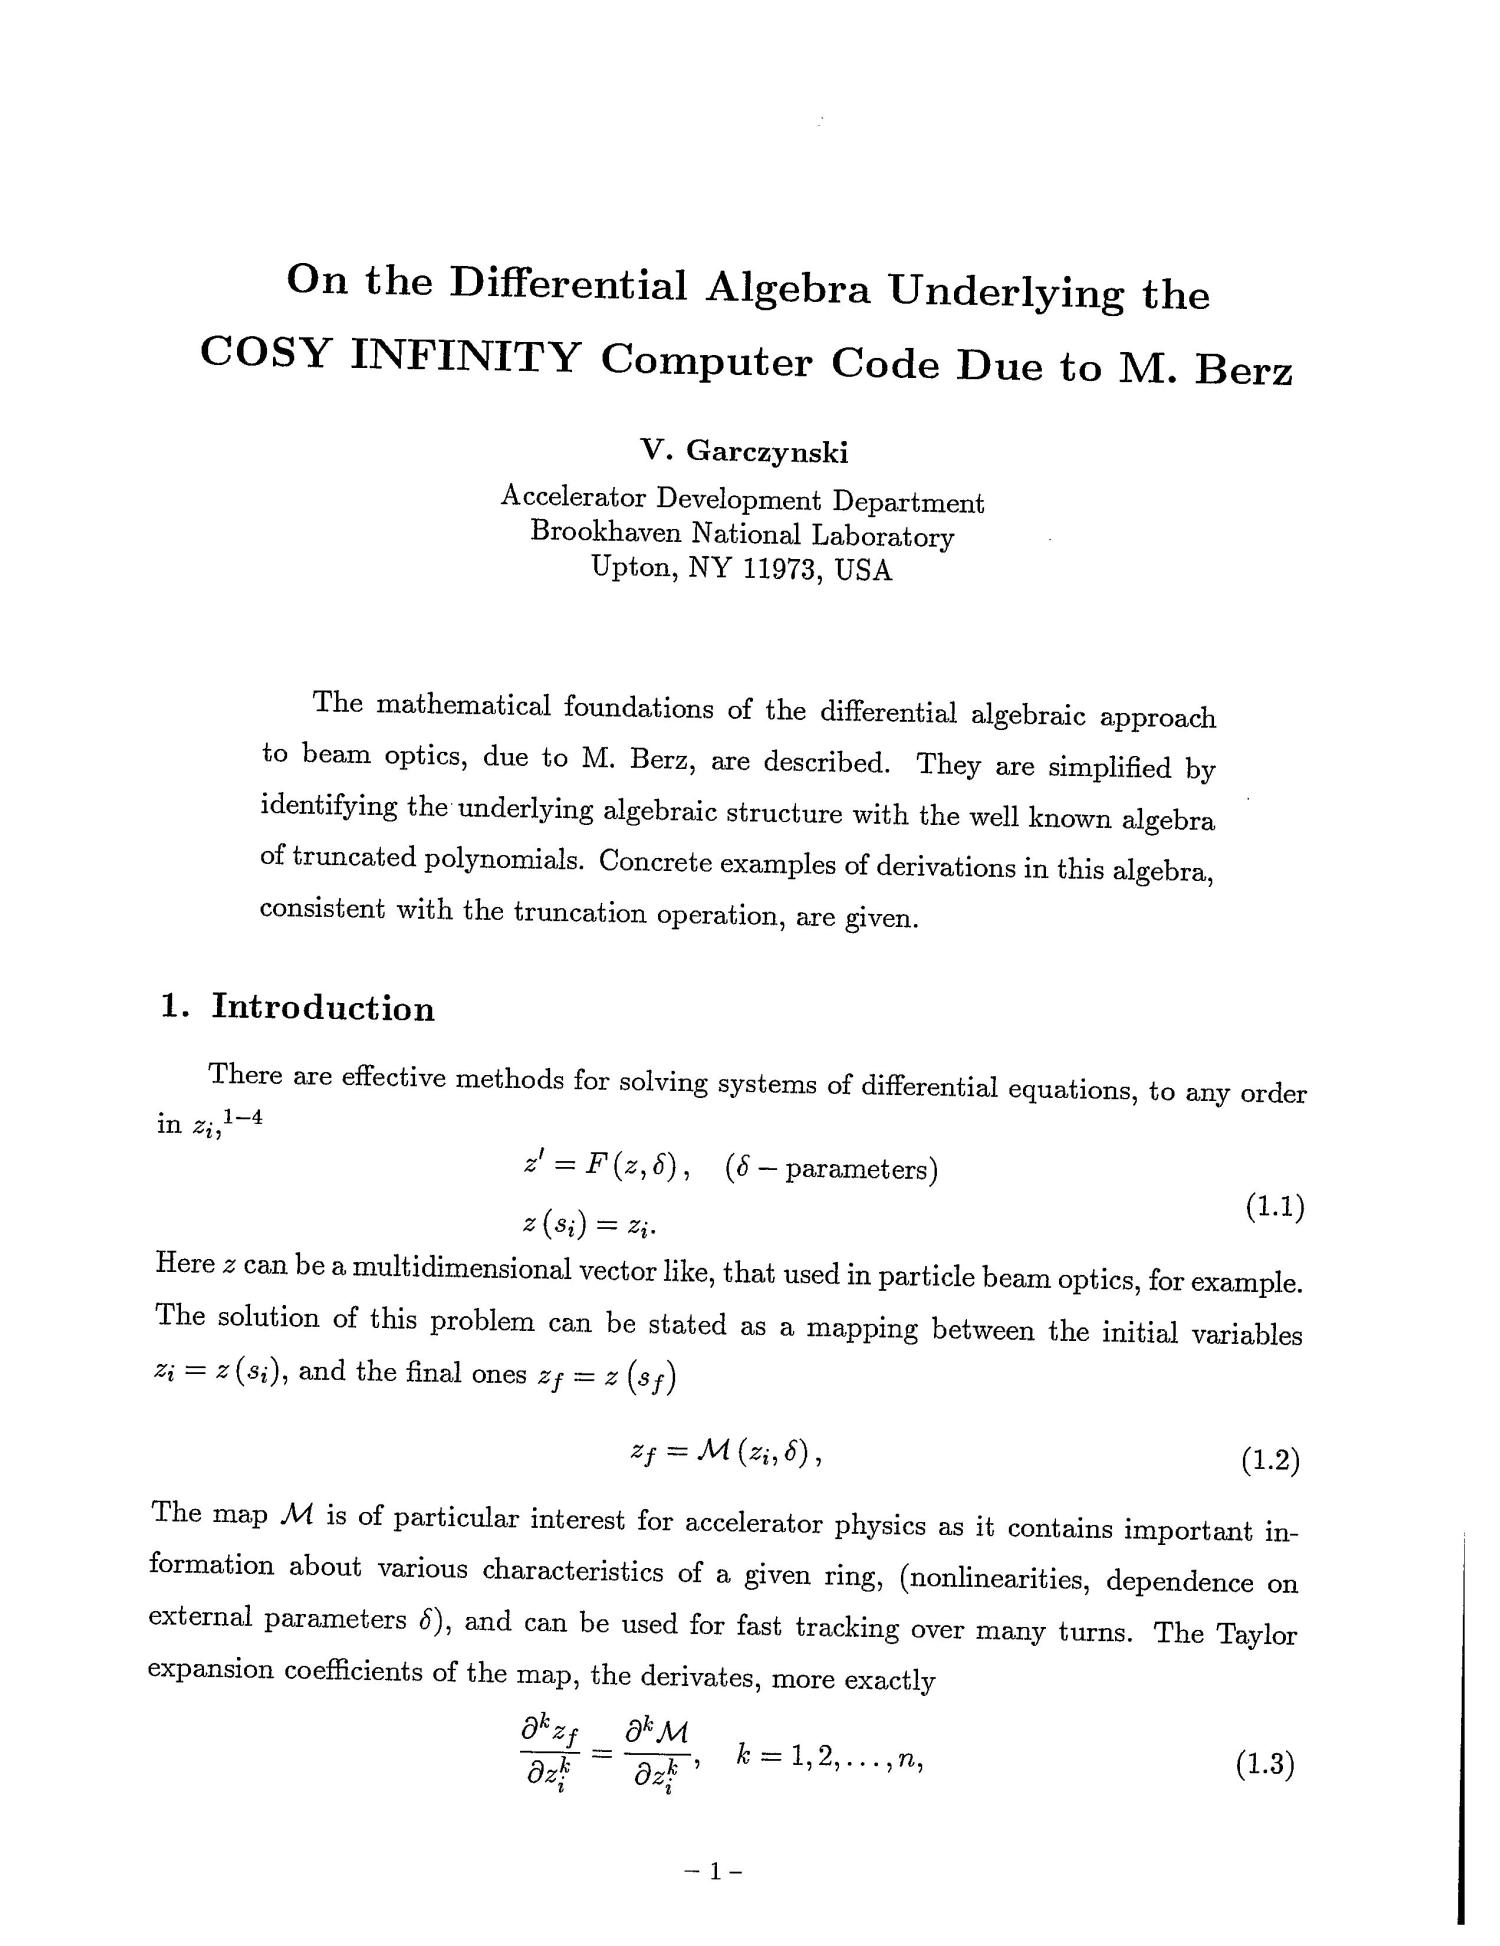 On the Differential Algebra Underlying the COSY INFINITY Computer Code Due to M. Berz                                                                                                      [Sequence #]: 2 of 29